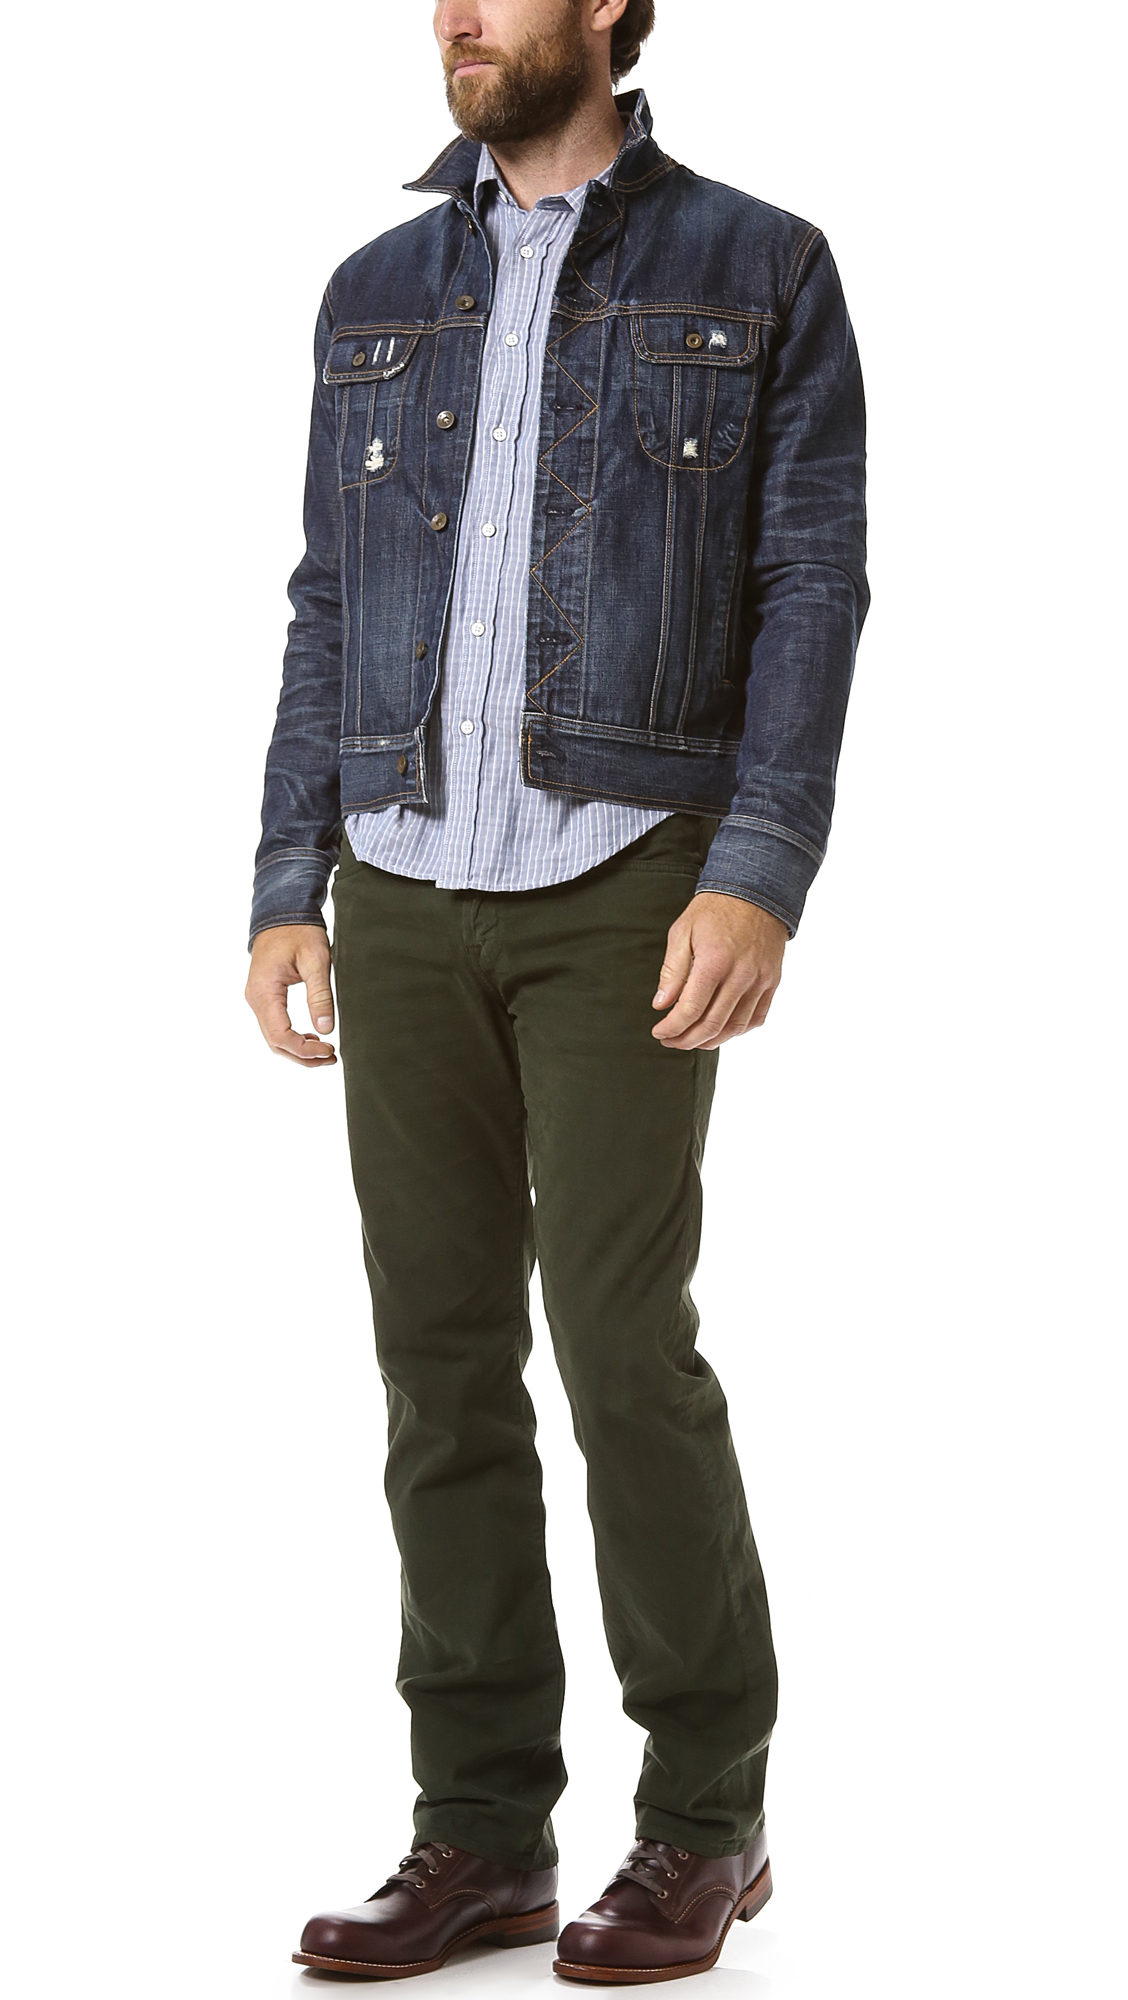 Collection Olive Green Jeans Mens Pictures - The Fashions Of Paradise